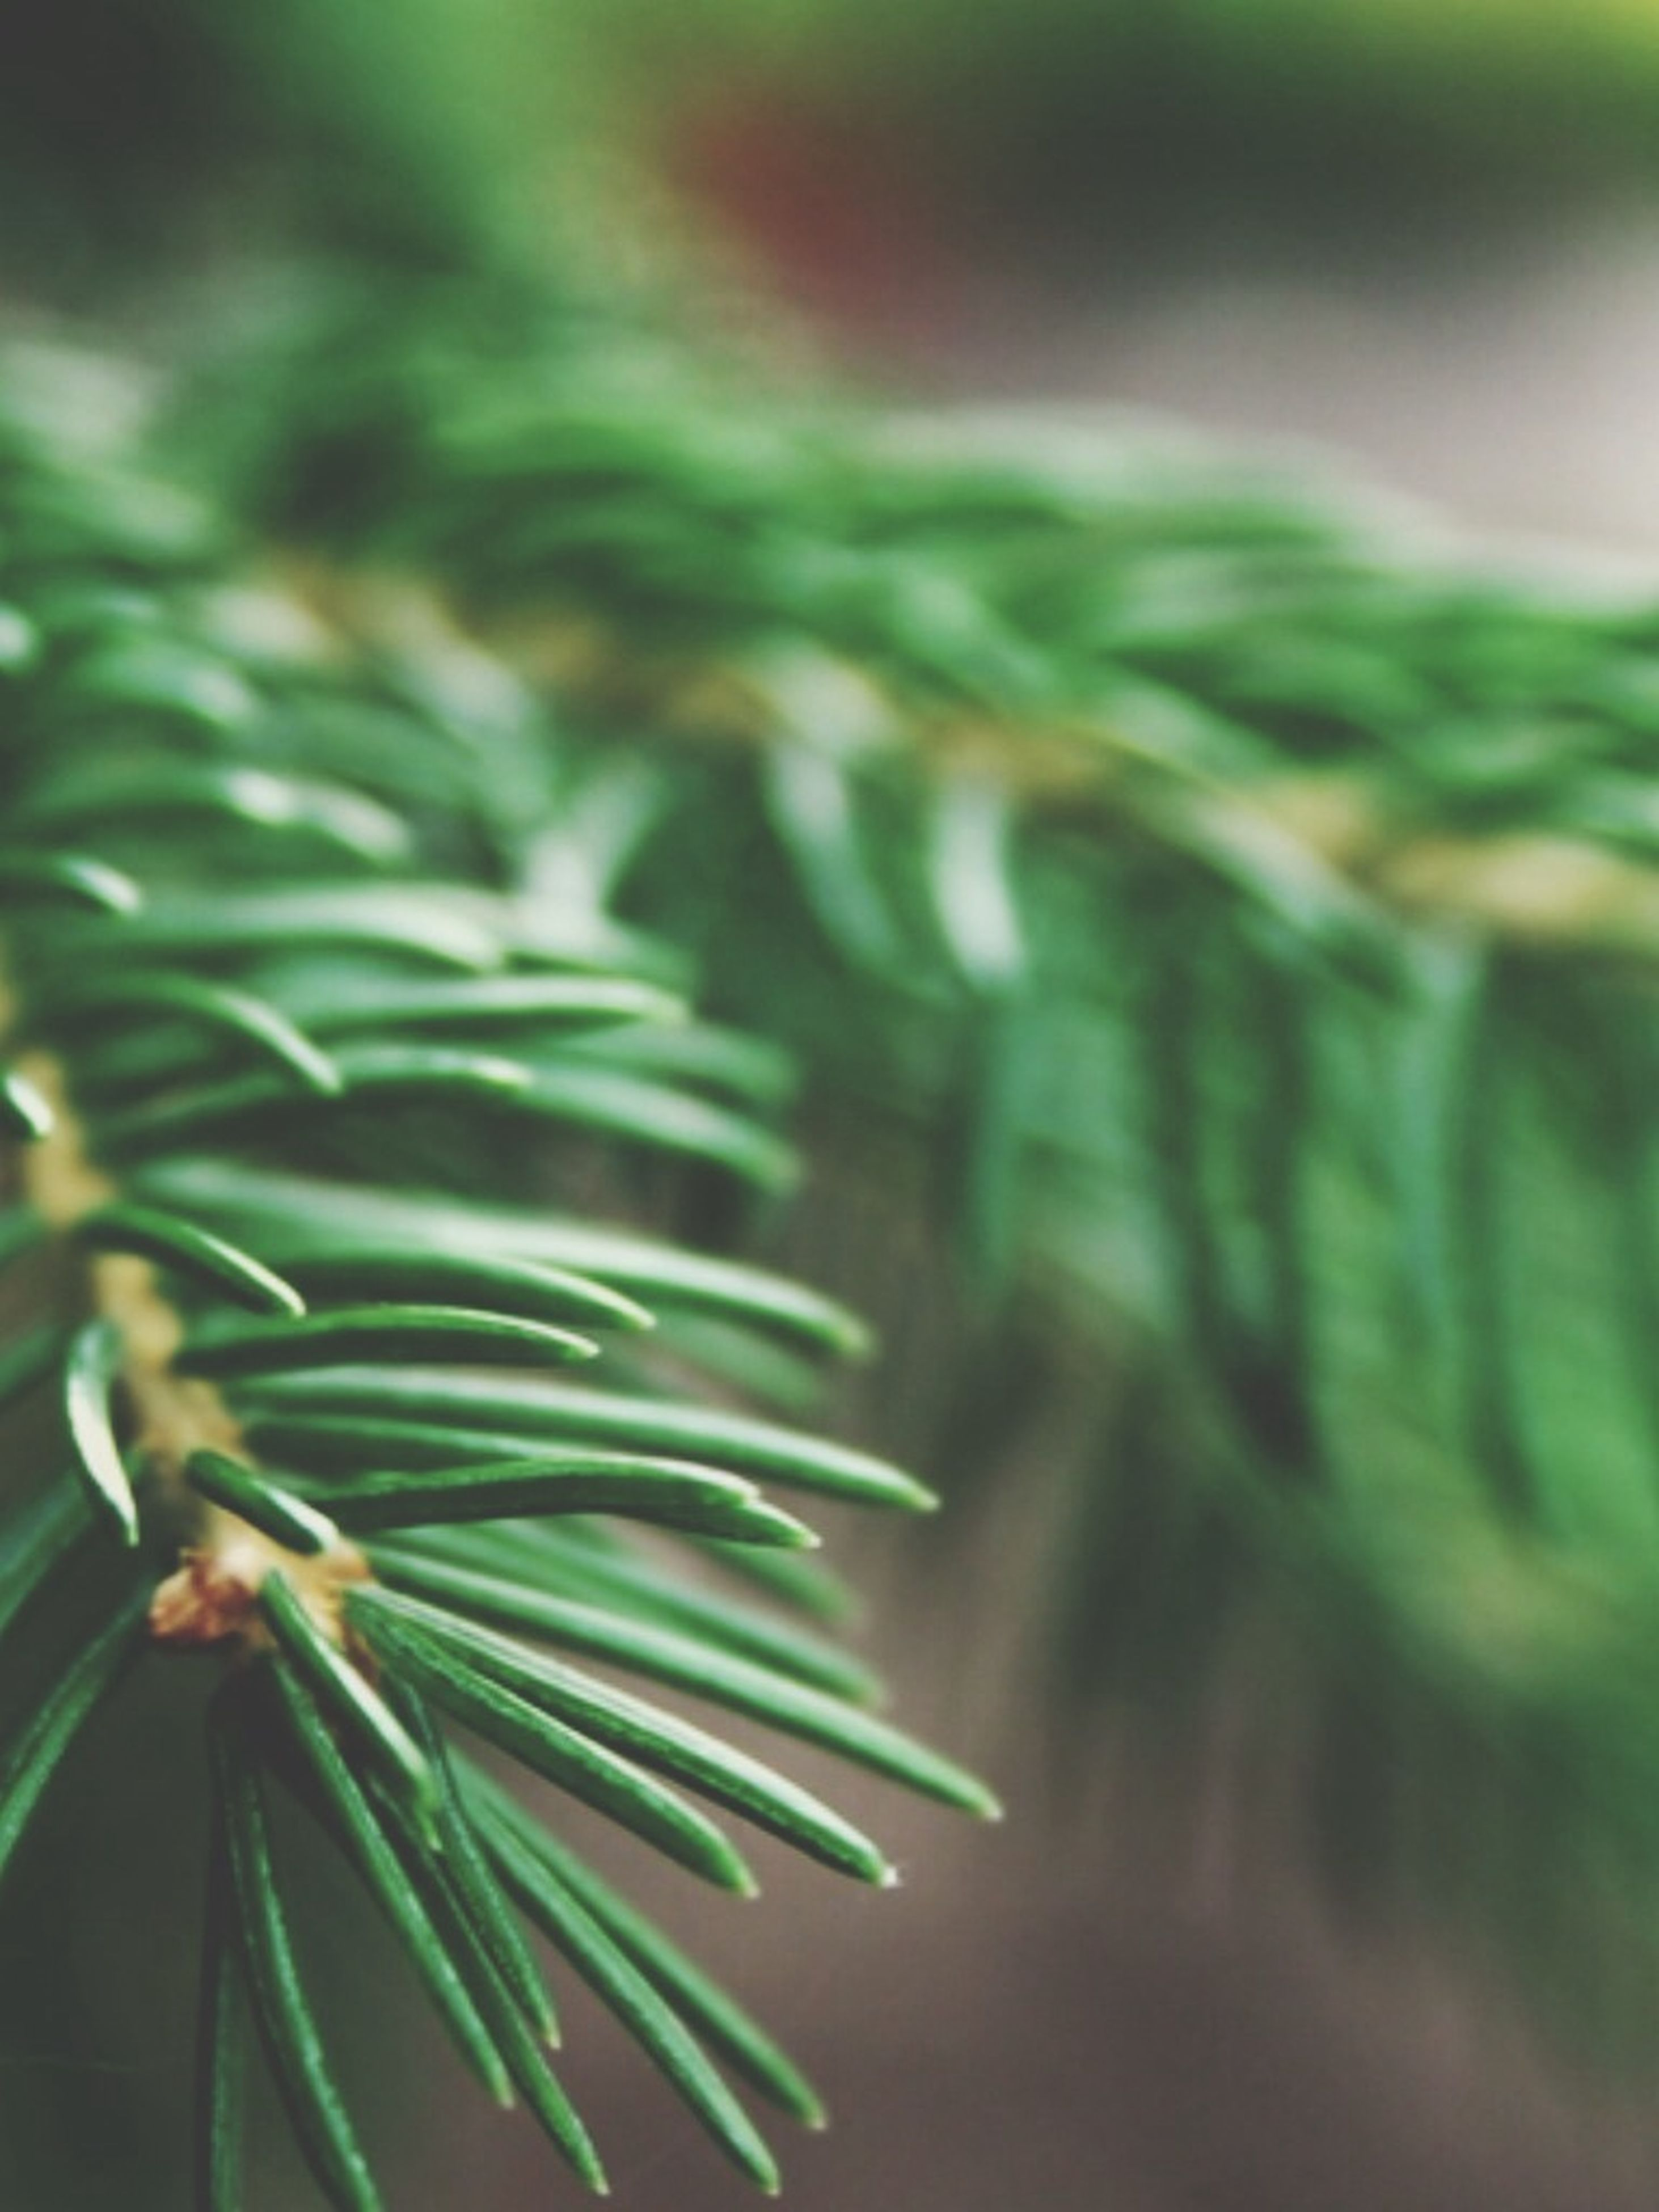 growth, green color, close-up, selective focus, plant, focus on foreground, nature, leaf, freshness, beauty in nature, green, fragility, day, no people, outdoors, natural pattern, growing, botany, macro, detail